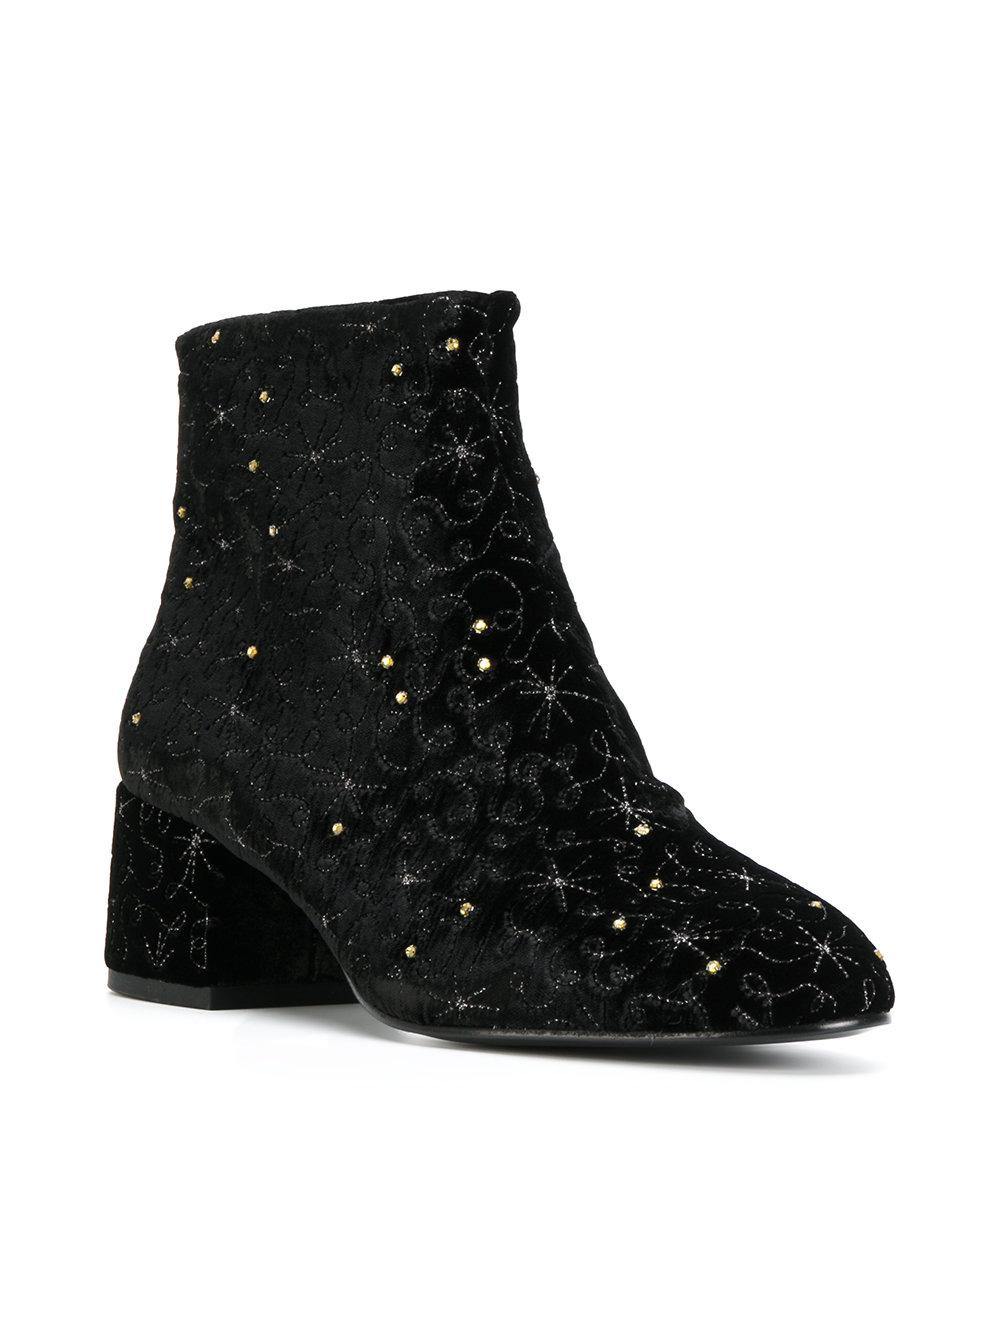 Ash Velvet Embroidered Ankle Boots in Black